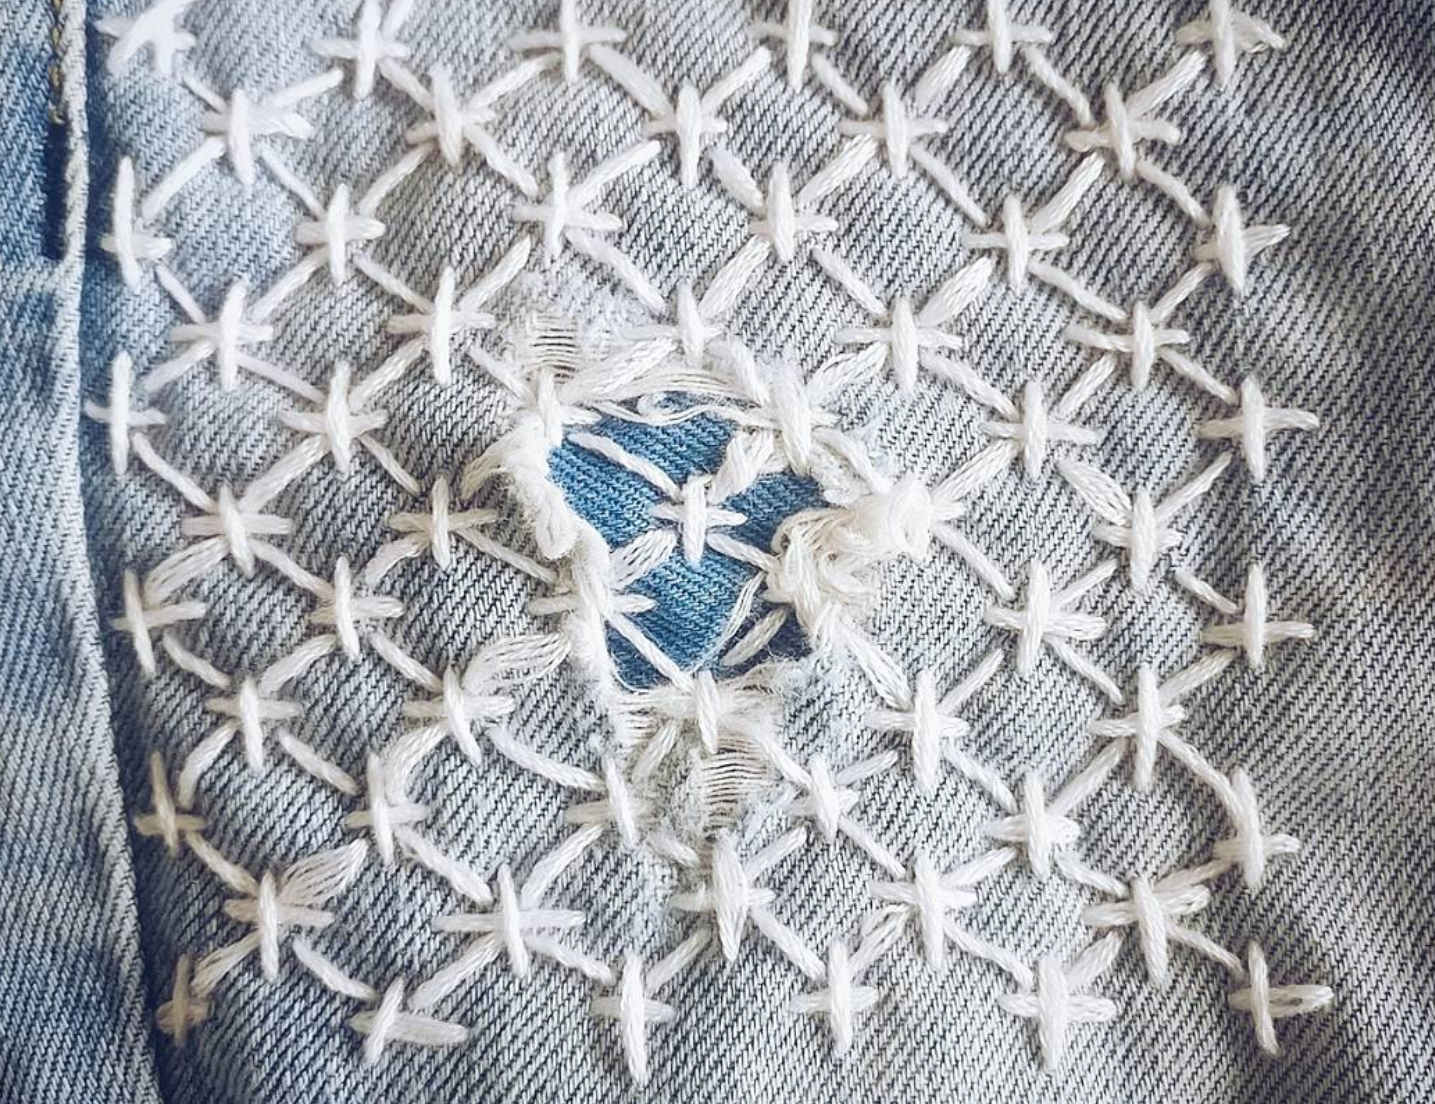 Ripped jeans patched up and mended using sashiko stitching